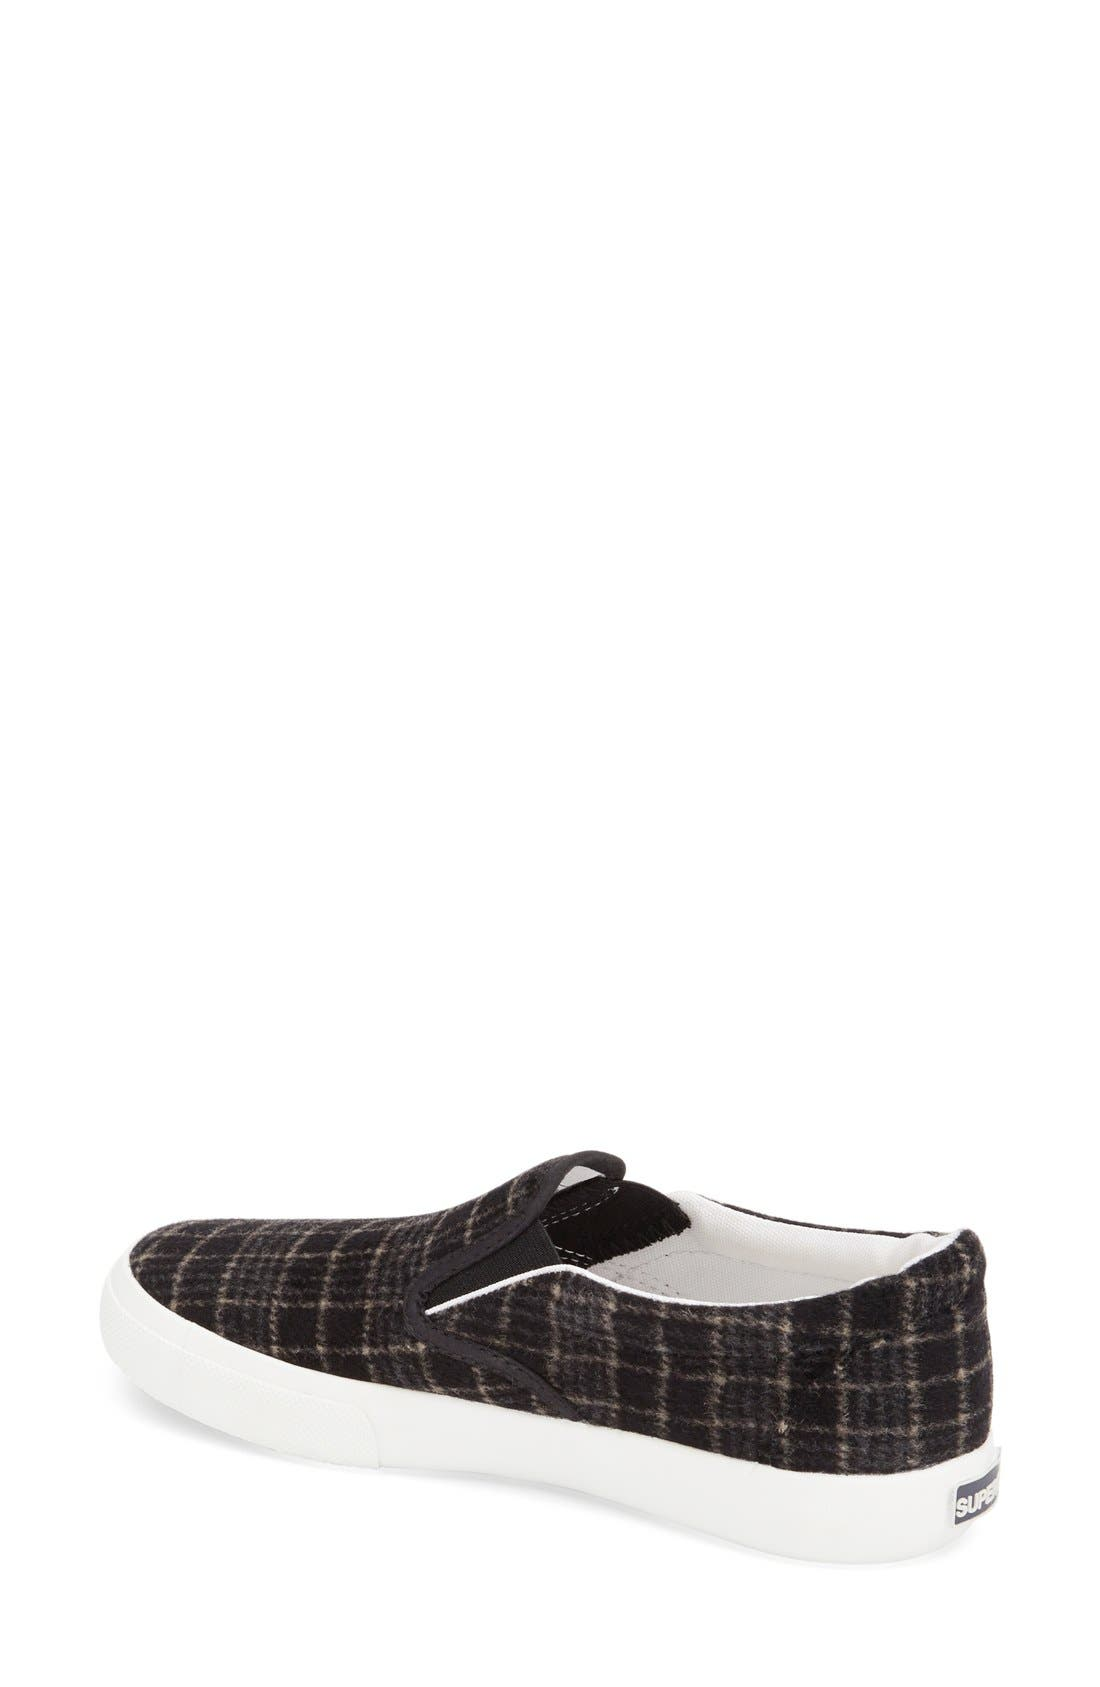 Alternate Image 2  - Superga Slip-On Sneaker (Women)